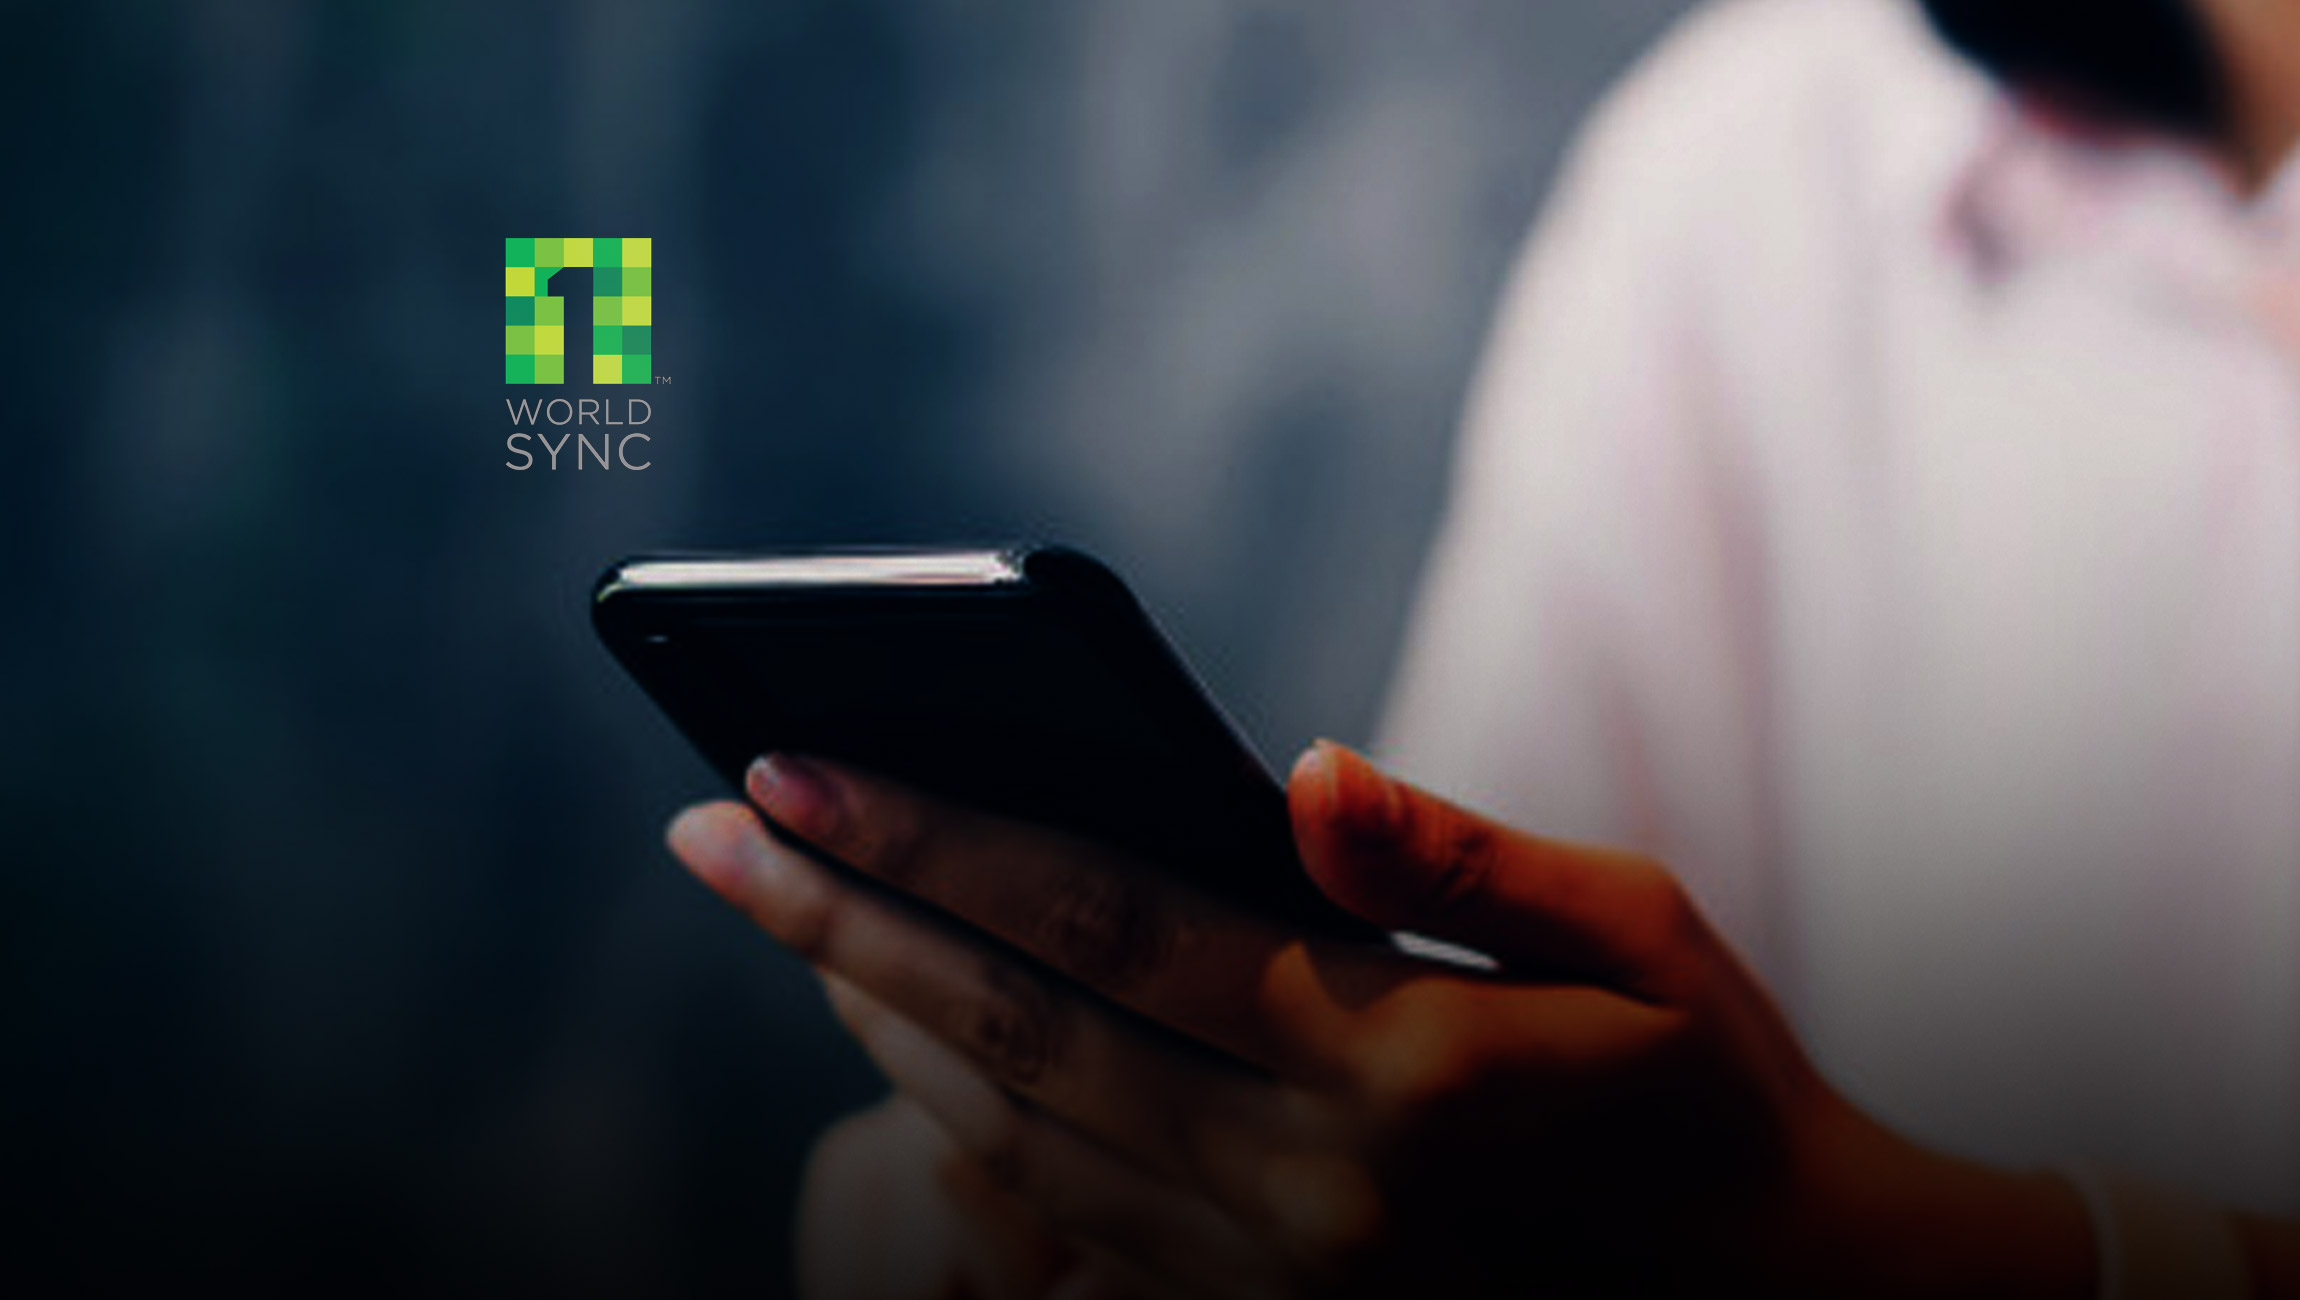 1WorldSync Announces New Capabilities to Automate Sourcing, Enrichment and Distribution of Product Content